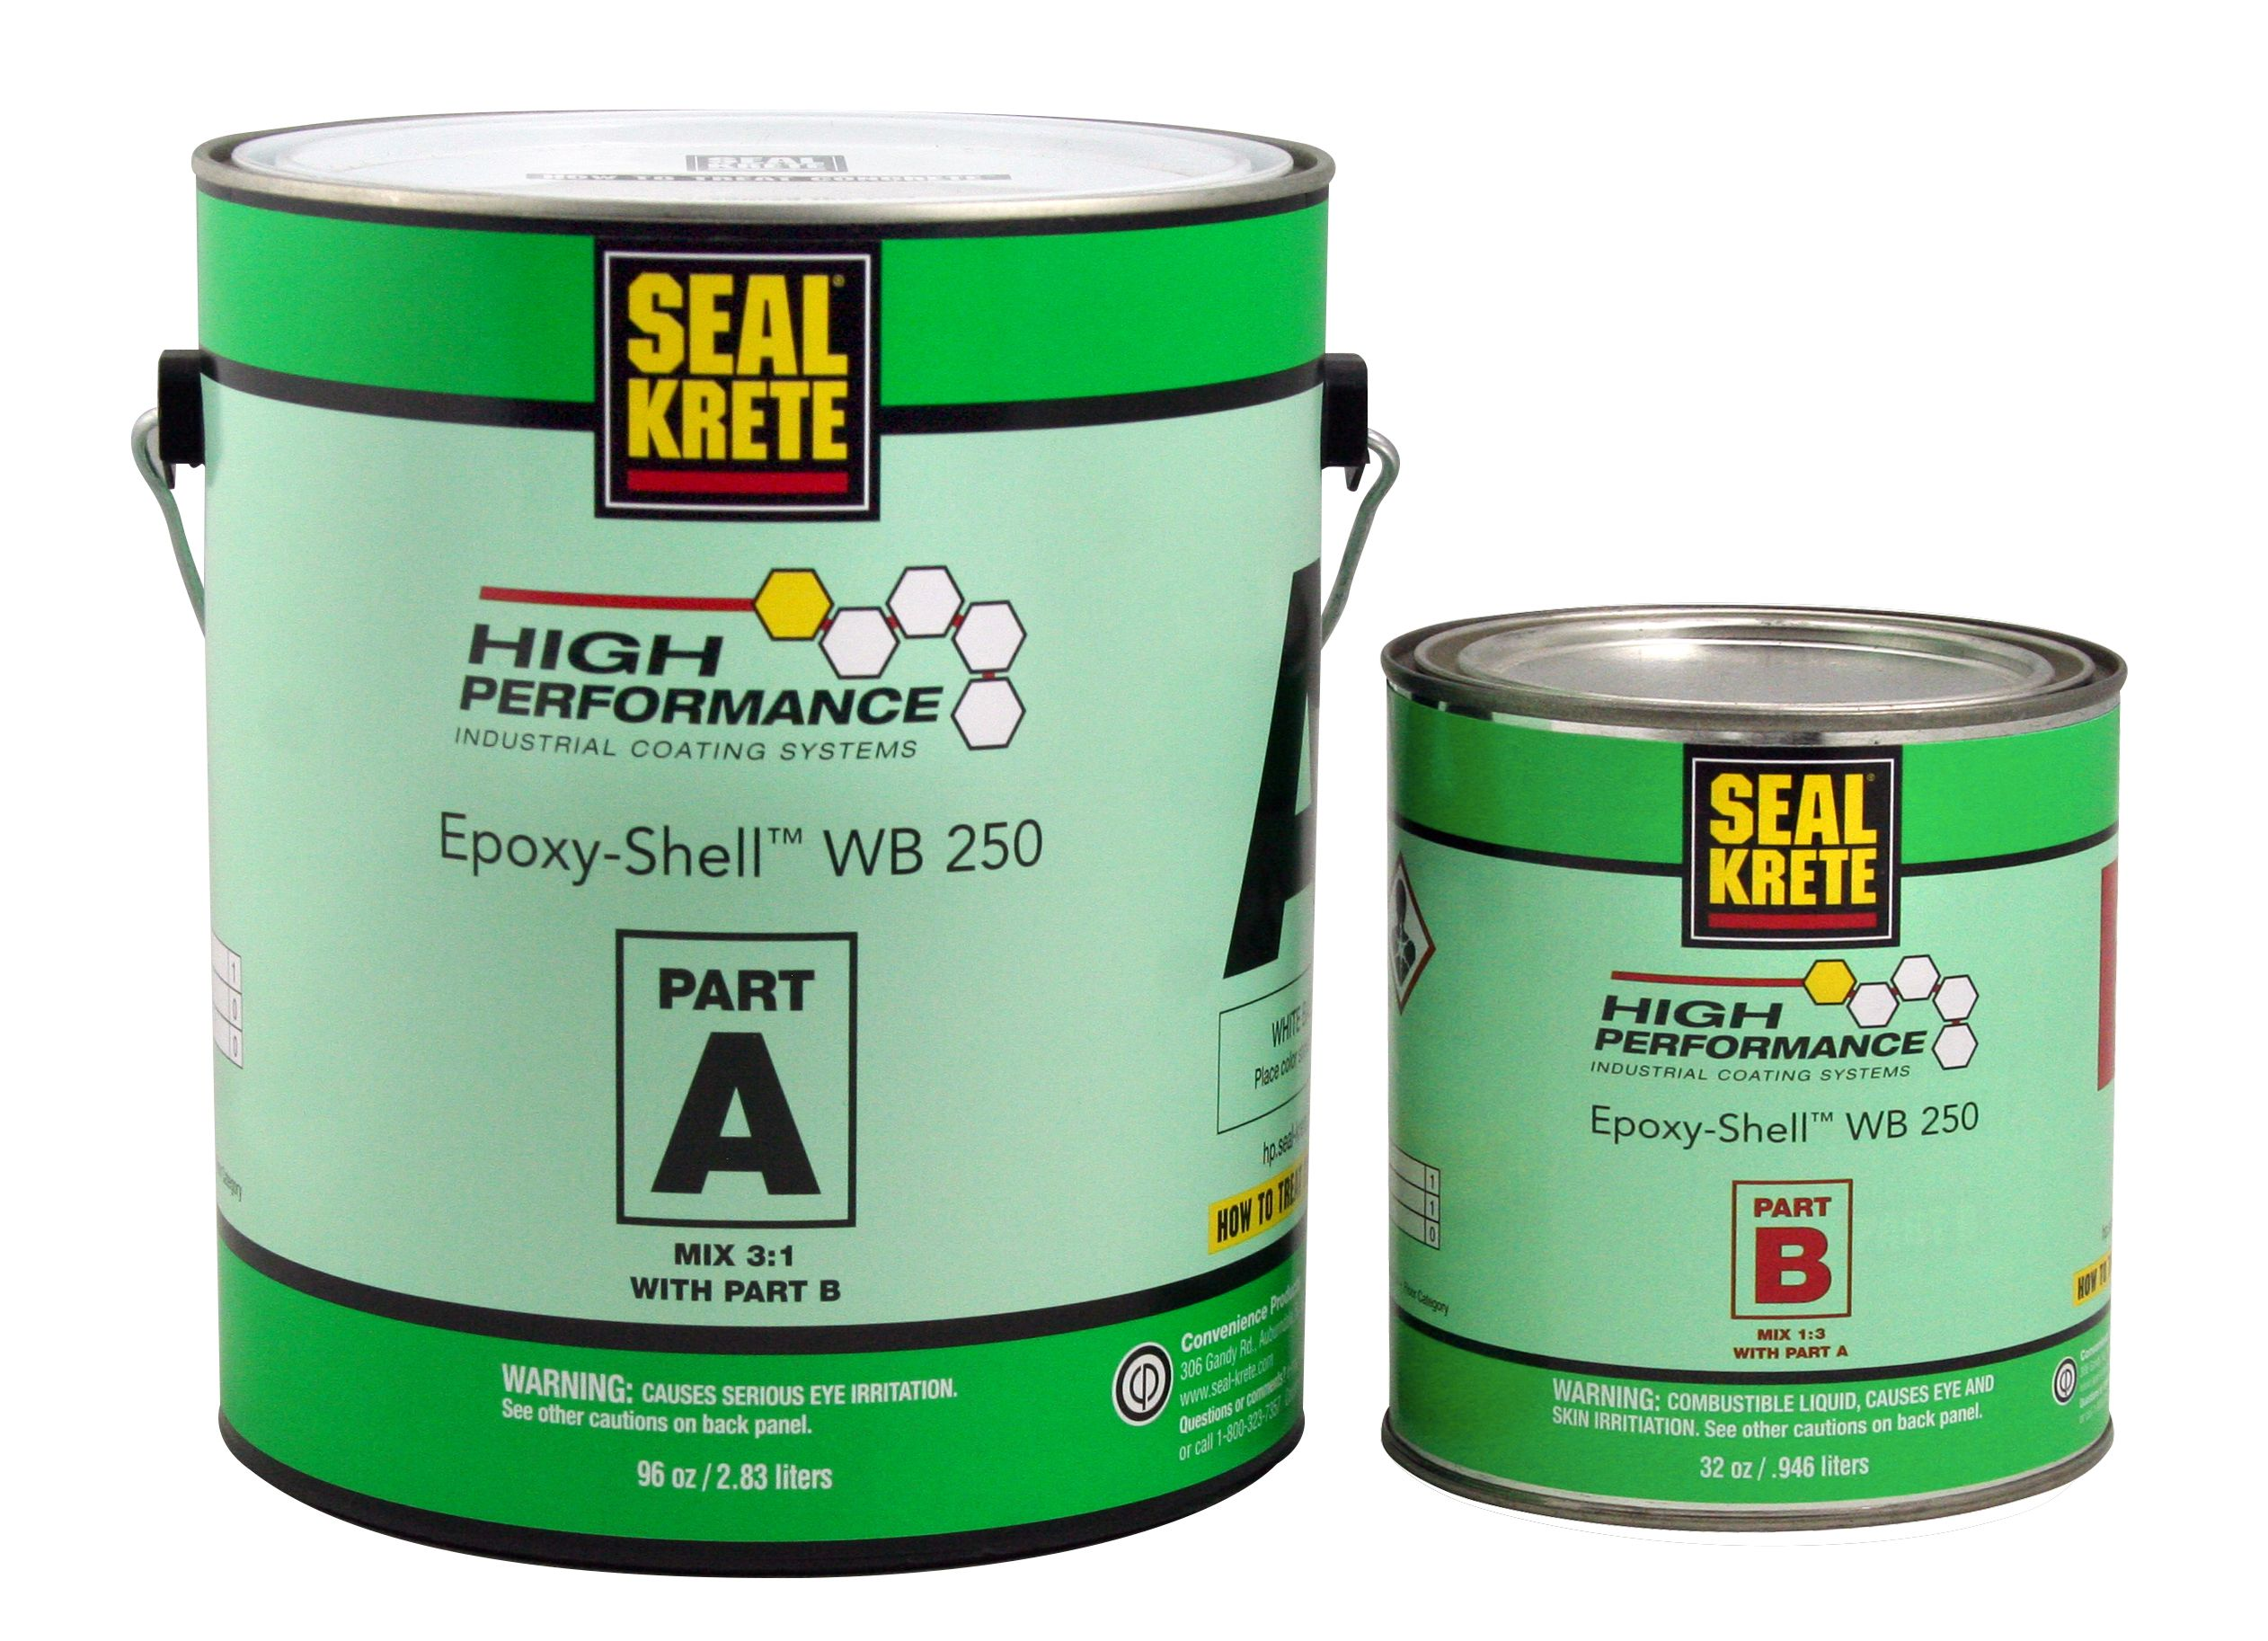 New Epoxy Shell Wb250 Is A Two Part Premium Water Based Epoxy Coating With Solvent Based Performance Characteristics World Of Concrete Epoxy Performance